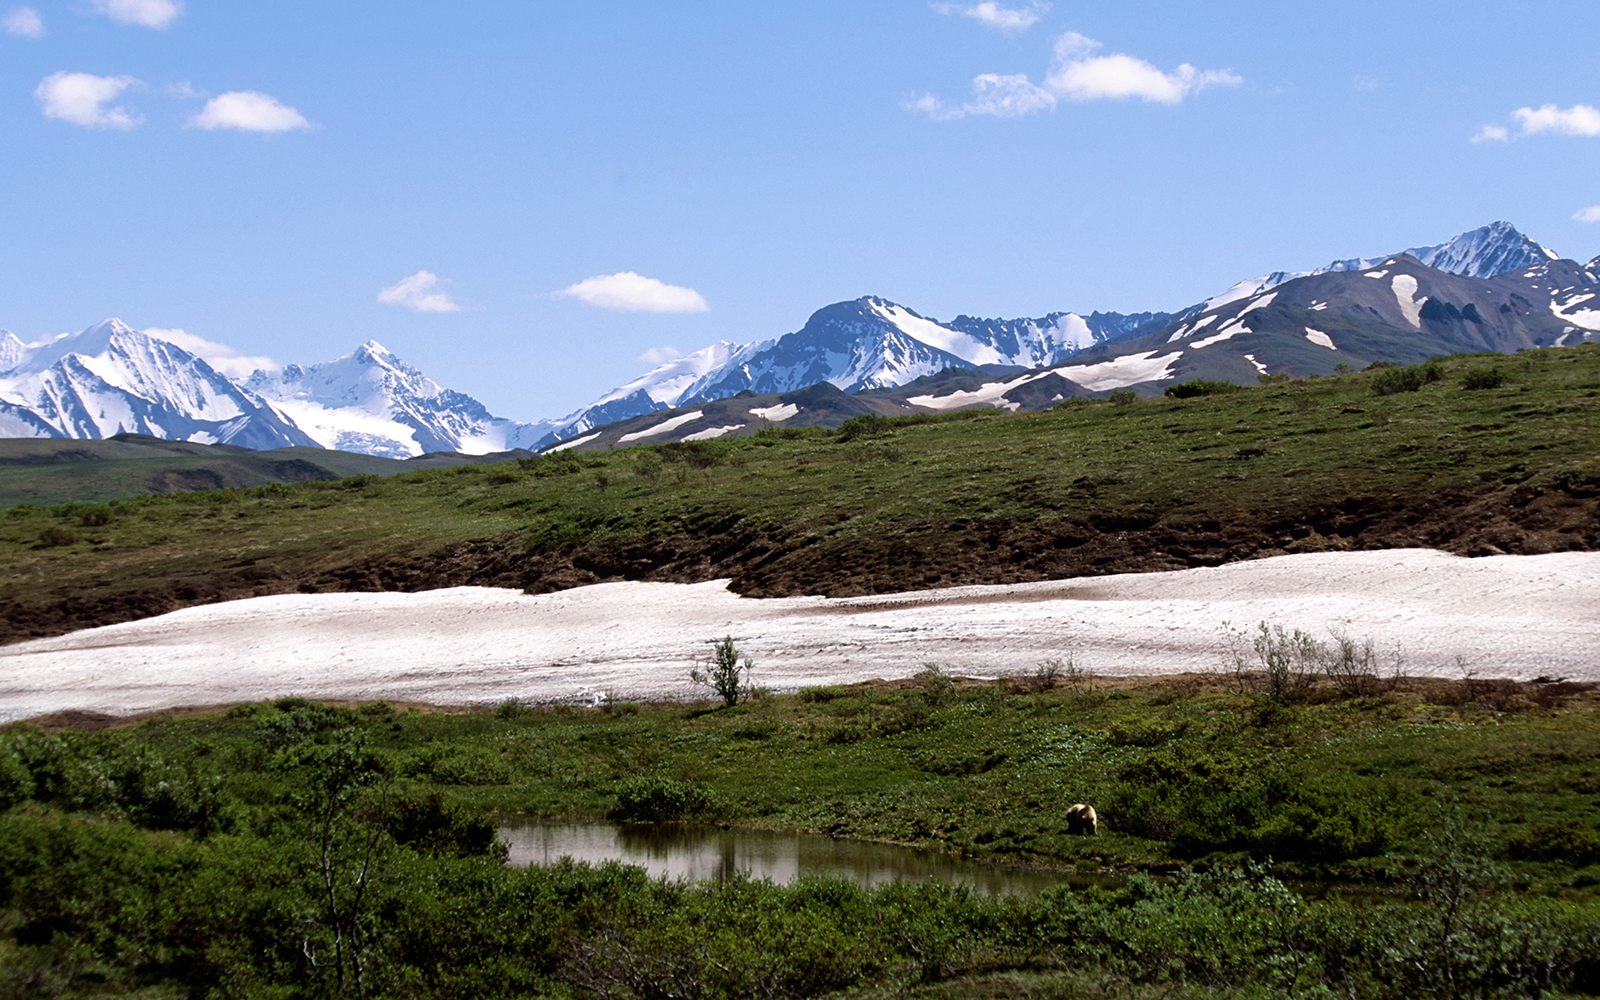 Best U.S. National Park Views: Sable Pass, Denali National Park